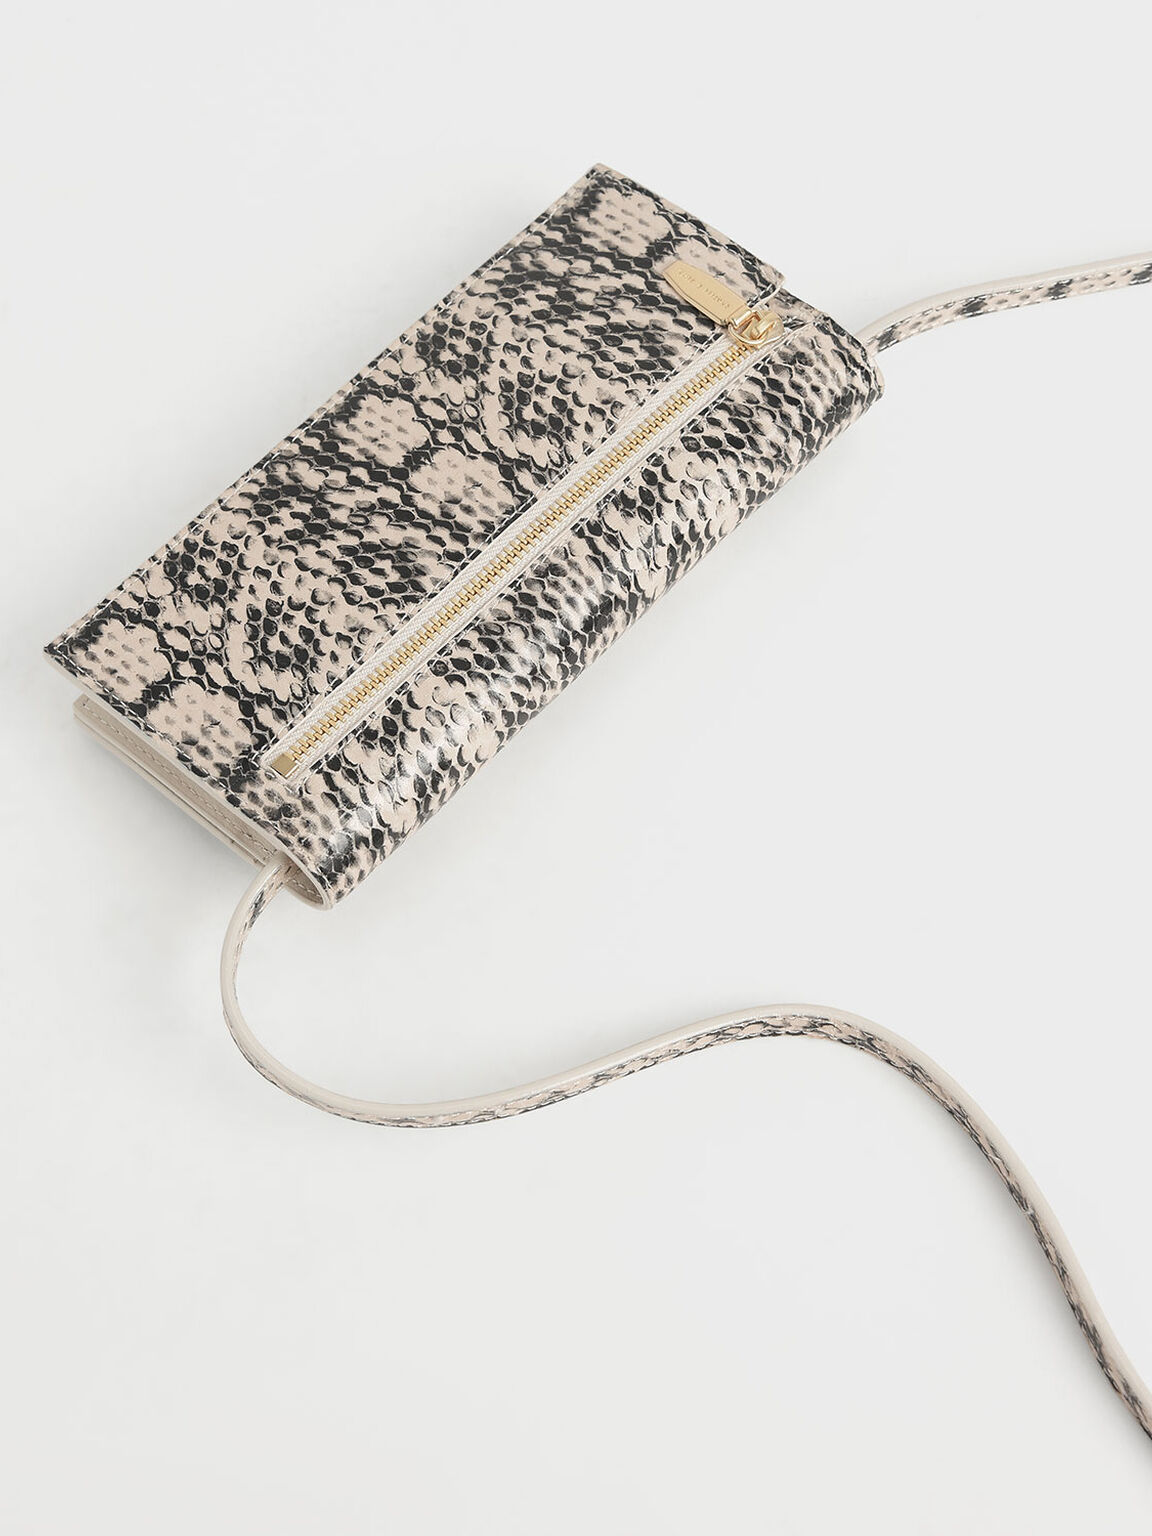 Mini Snake Print Front Zip Long Wallet, Cream, hi-res